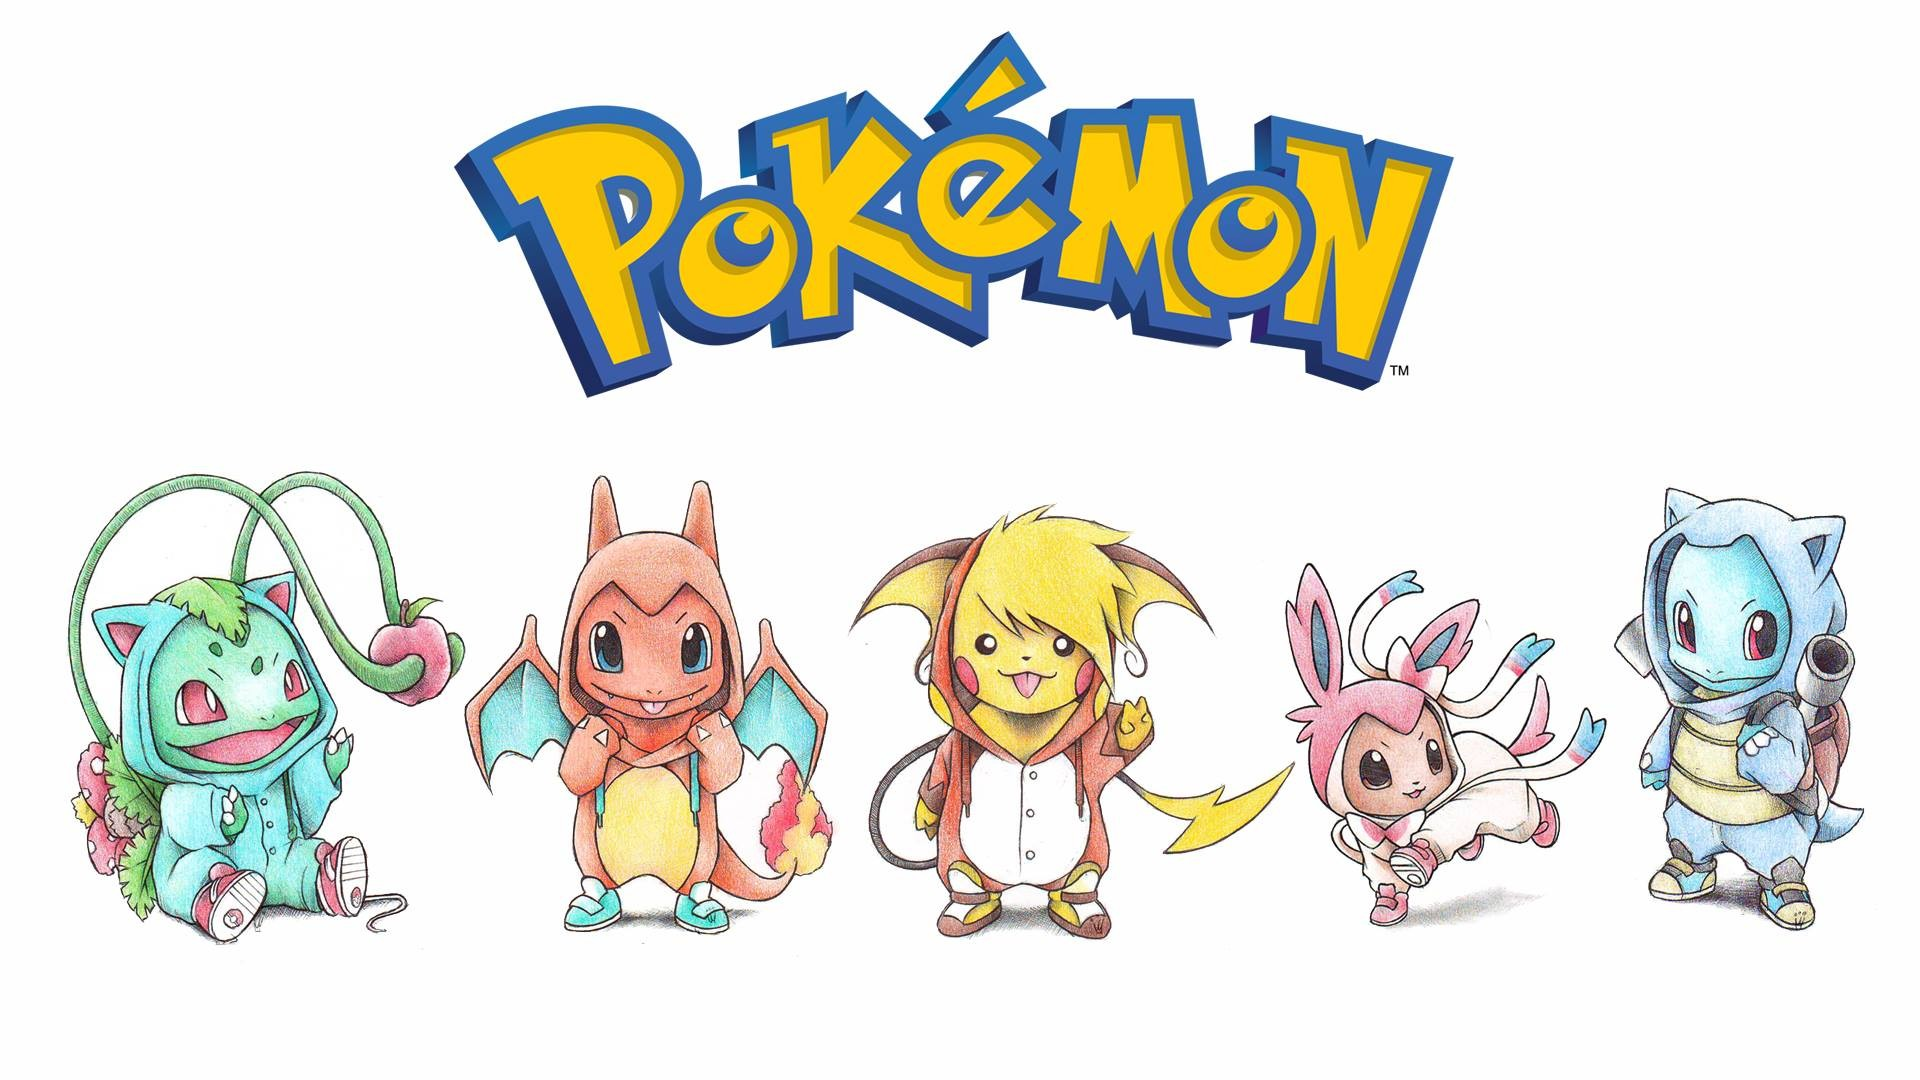 General 1920x1080 Pikachu Bulbasaur Squirtle Eevee Charmander